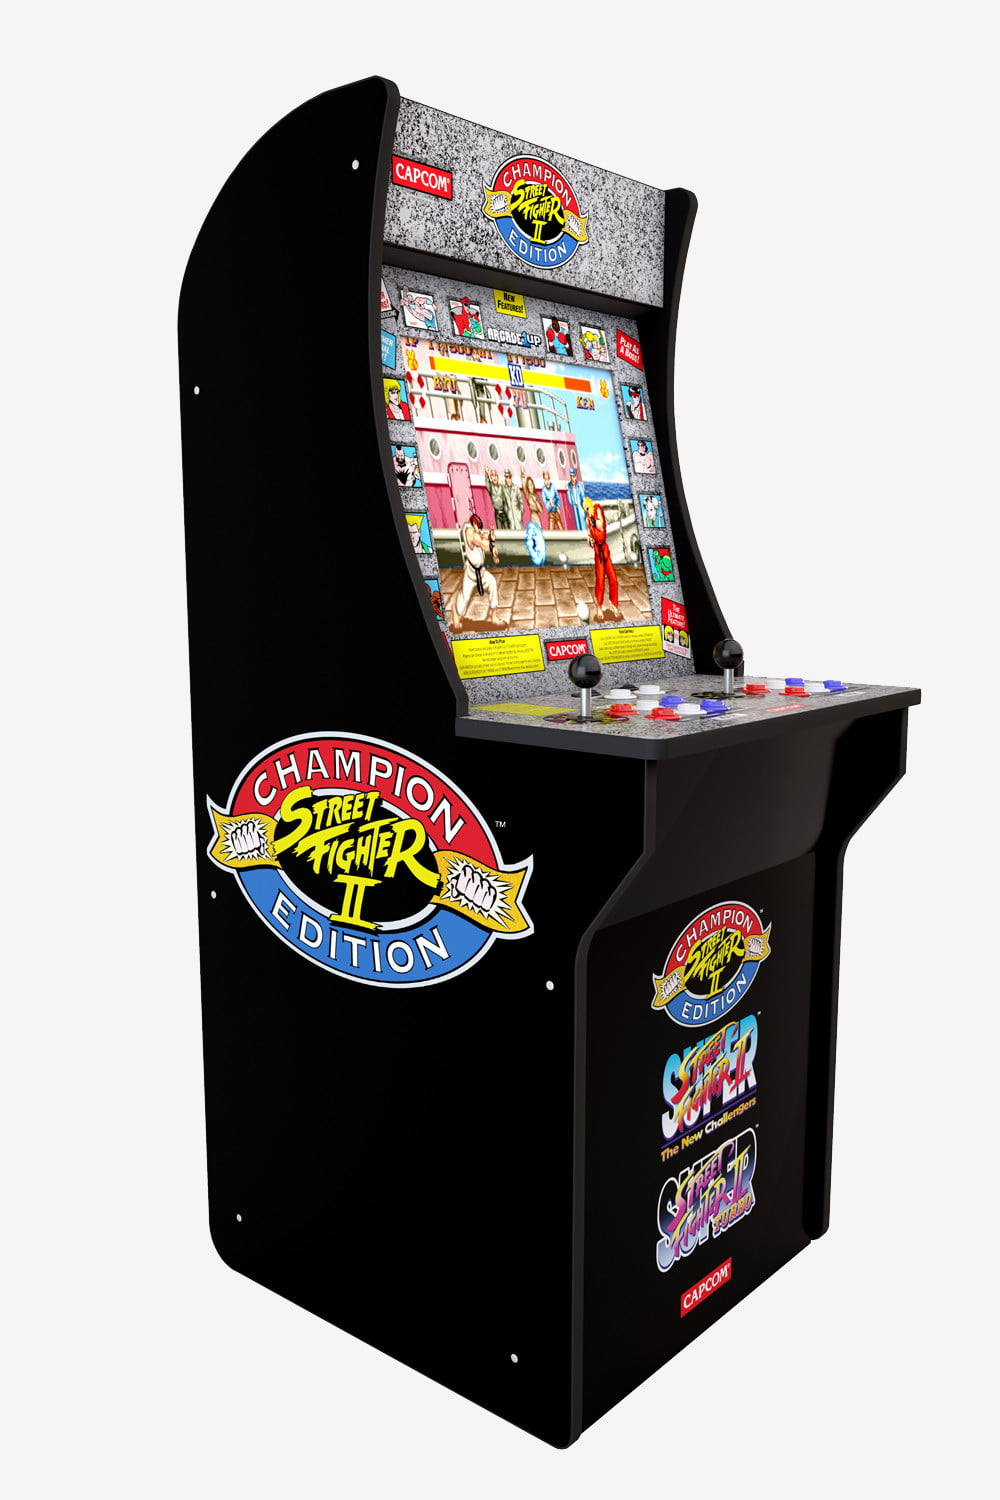 Relive the Glory Days of Arcade Games With the Arcade1Up